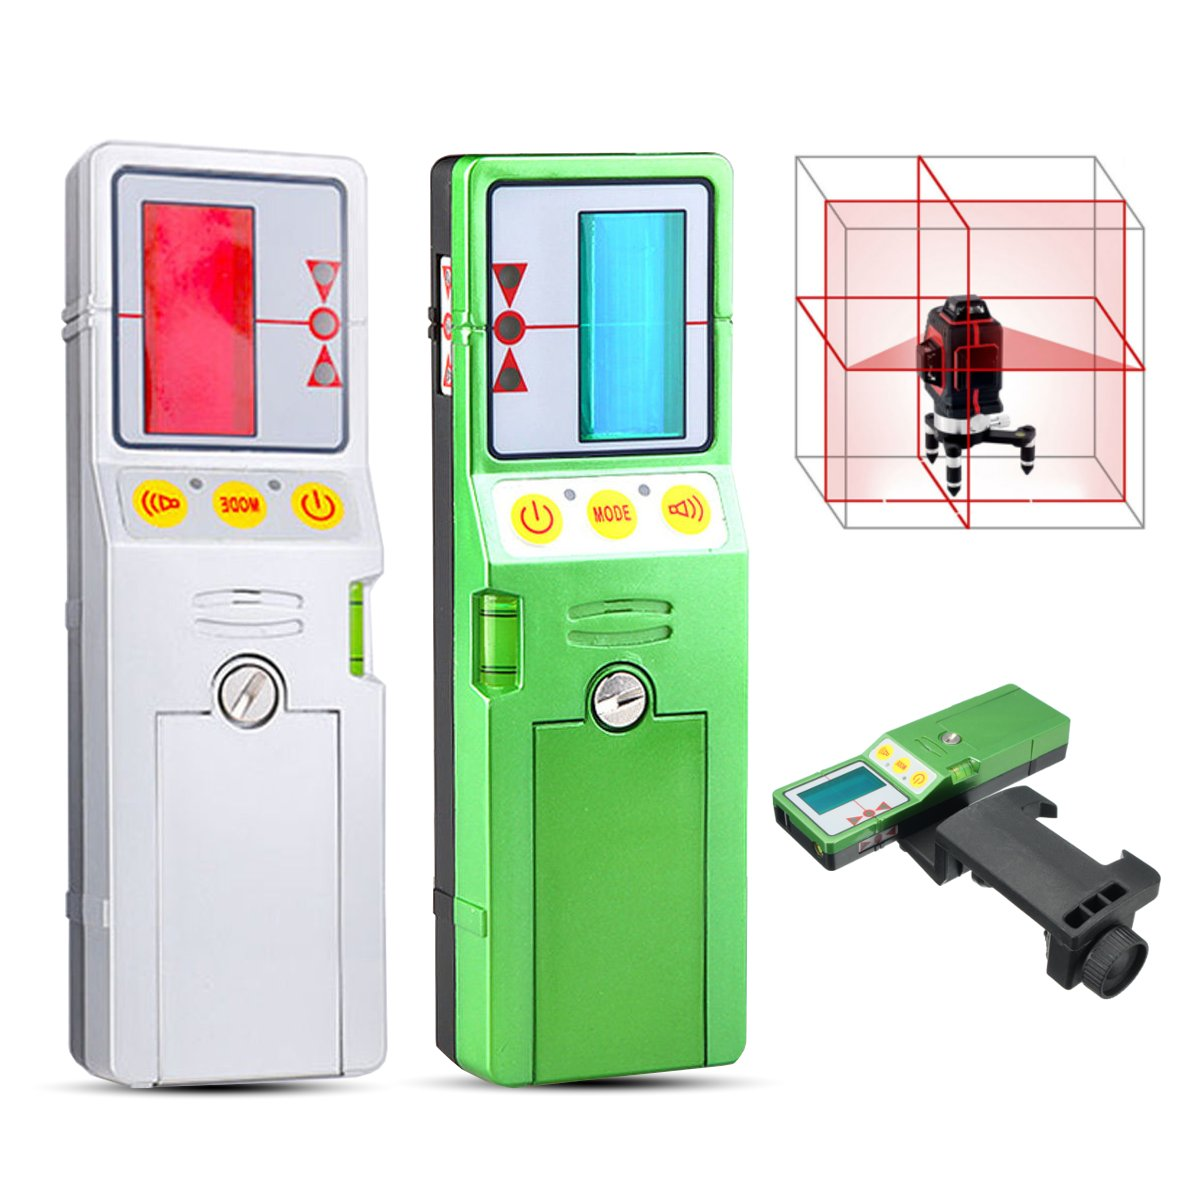 12 Line 3D Laser Level Detector Receiver Red Green Line Vertical with Clamp FD-9/FD-9G tungsten alloy steel woodworking router bit buddha beads ball knife beads tools fresas para cnc freze ucu wooden beads drill